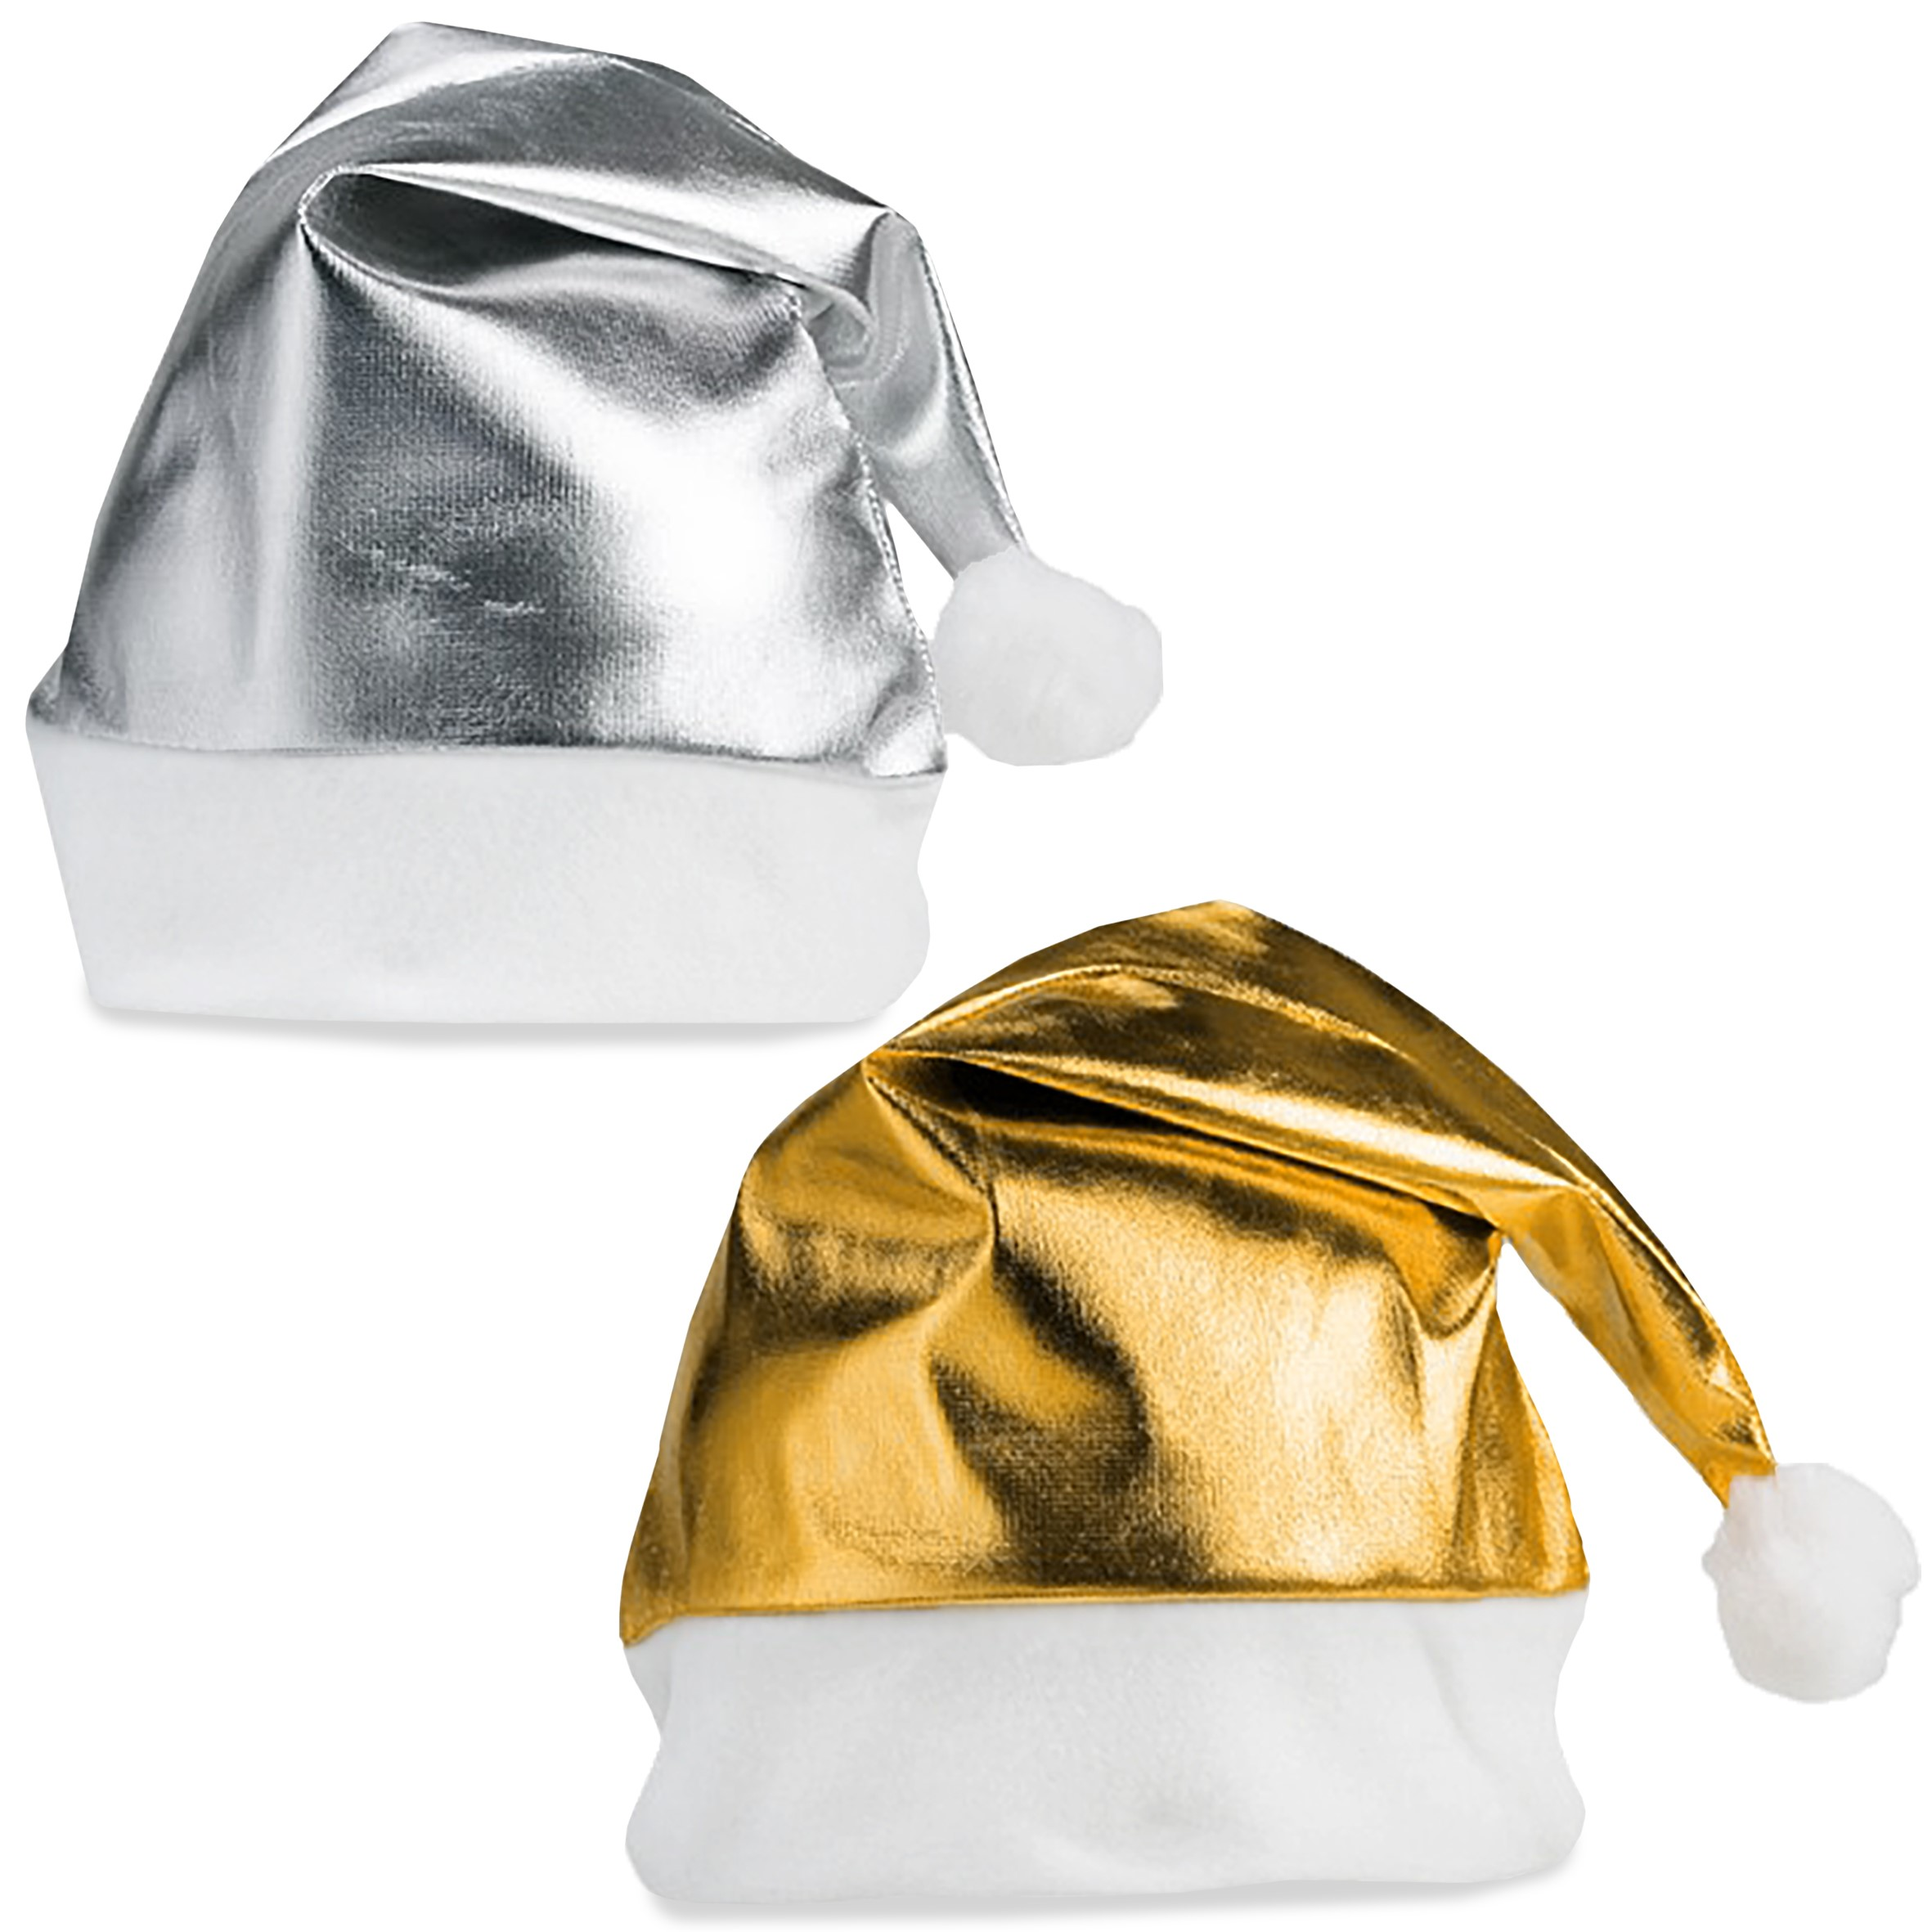 Metallic Festive Hat - Silver Only - GIFT-17381